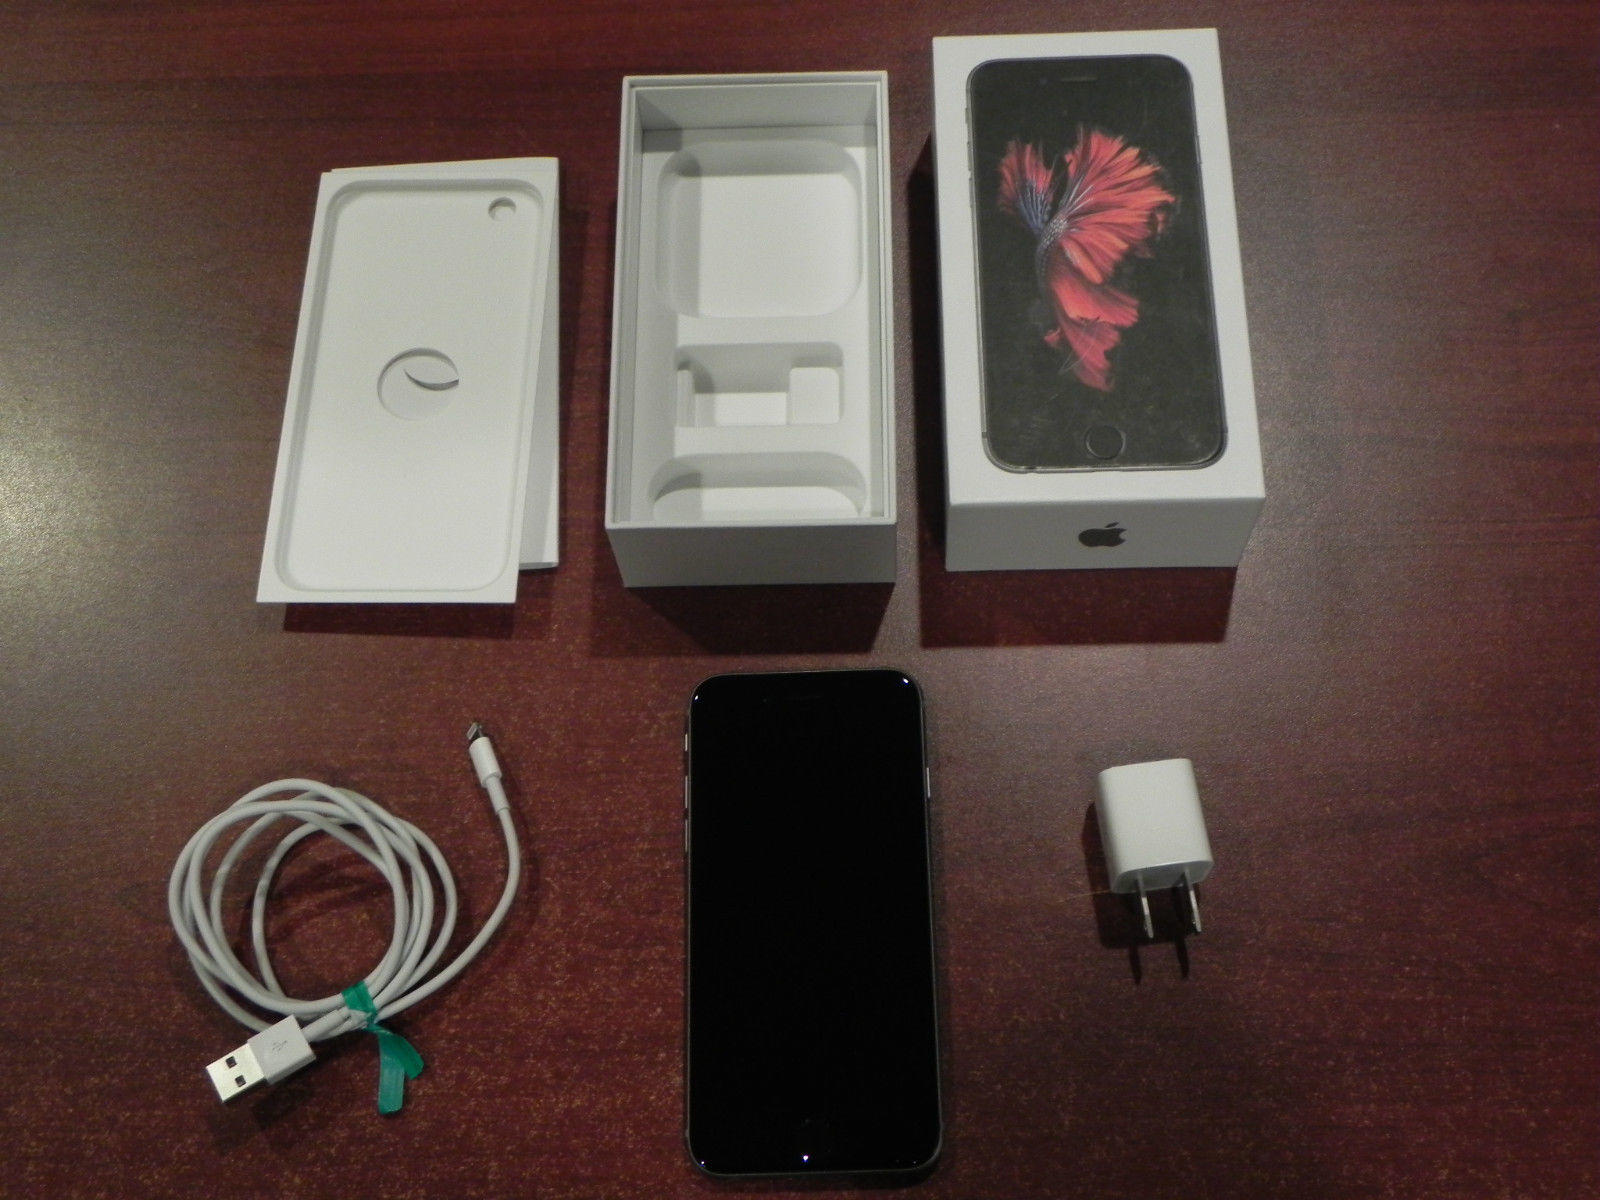 Near MINT Apple iPhone 6s - 16GB - Space Gray (Verizon) (Unlocked) (MKRR2LL/A)